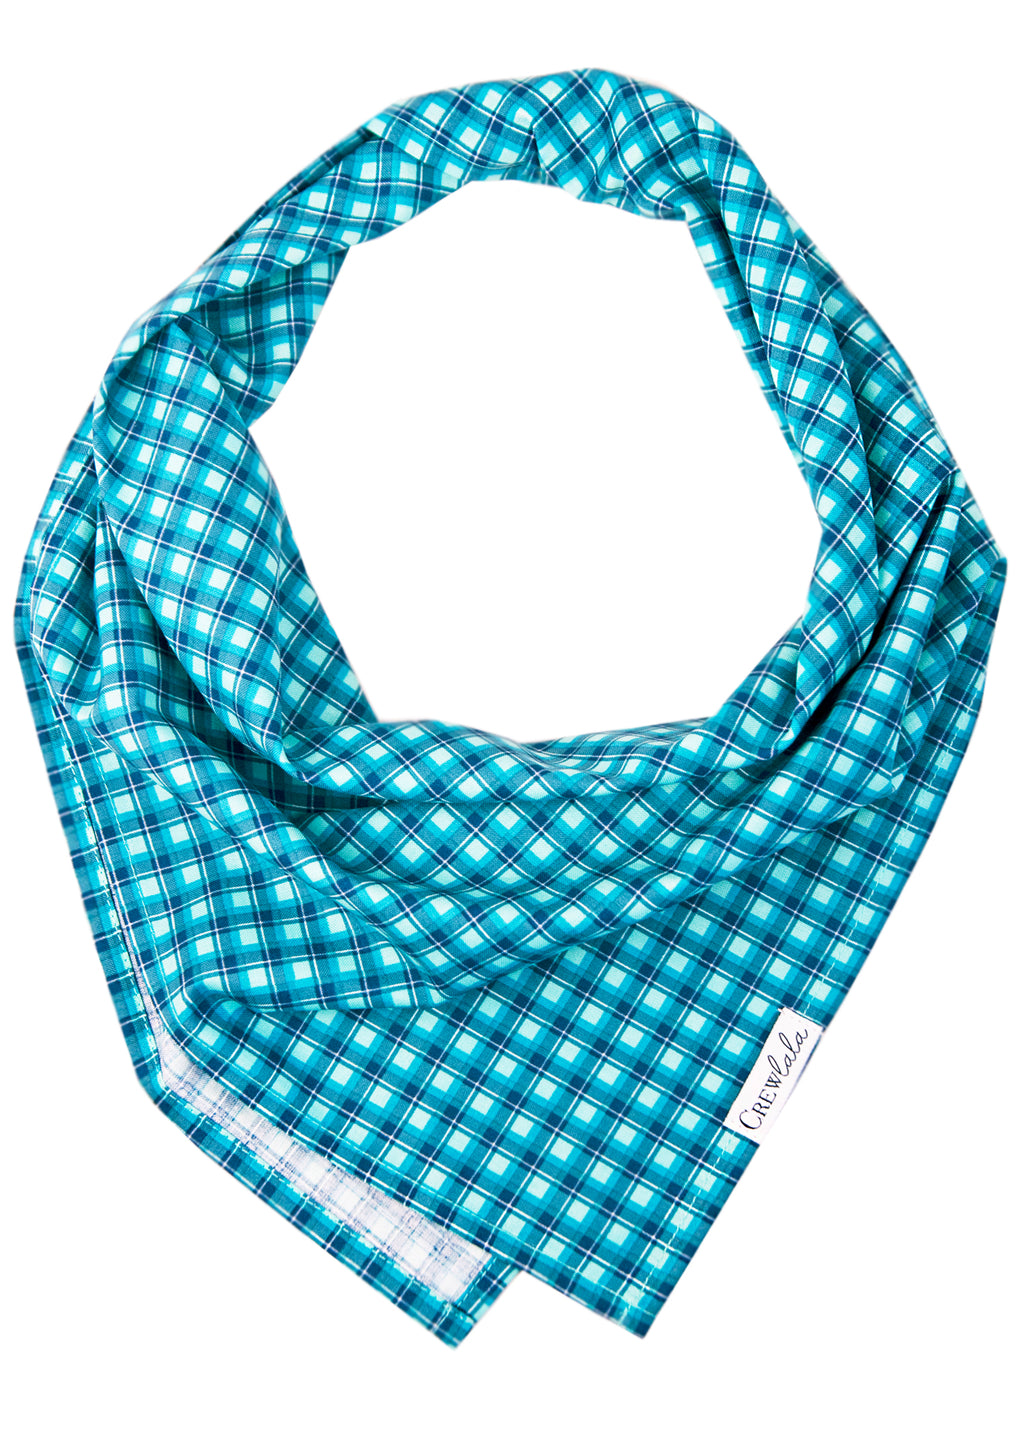 Coastal Plaid Dog Bandana